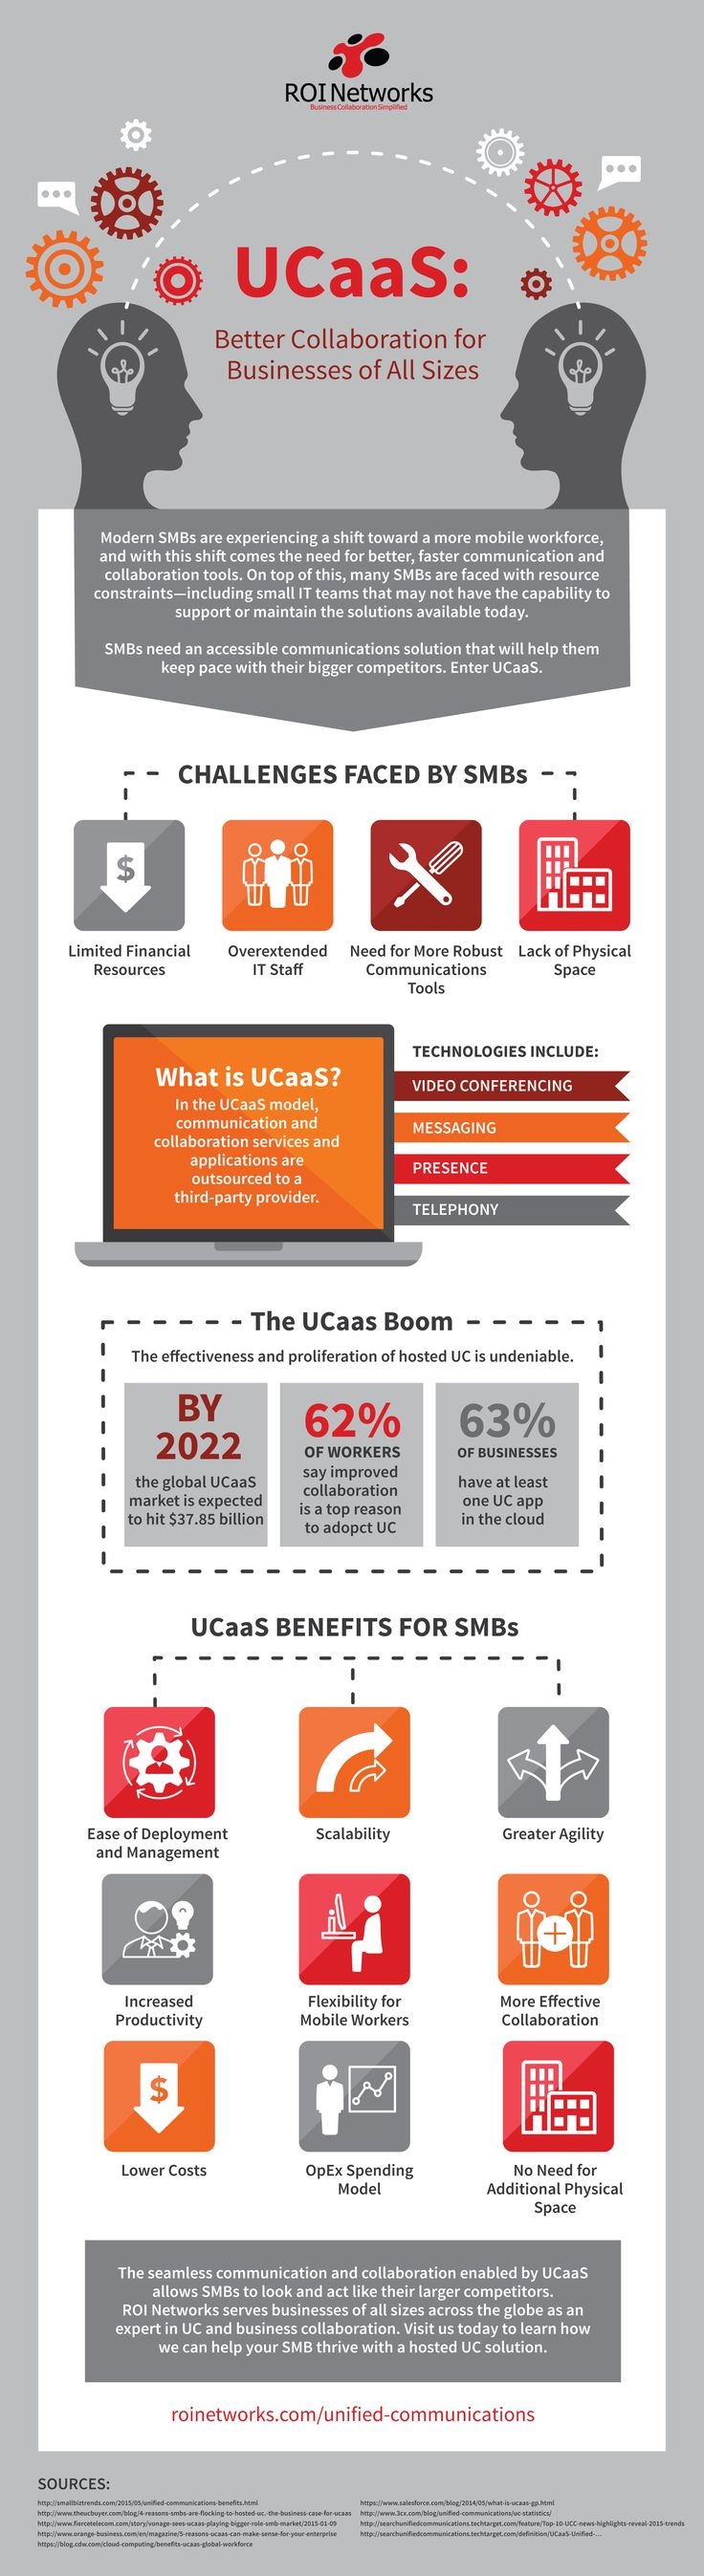 #SMBs #collaborate and #communicate better with #UCaaS